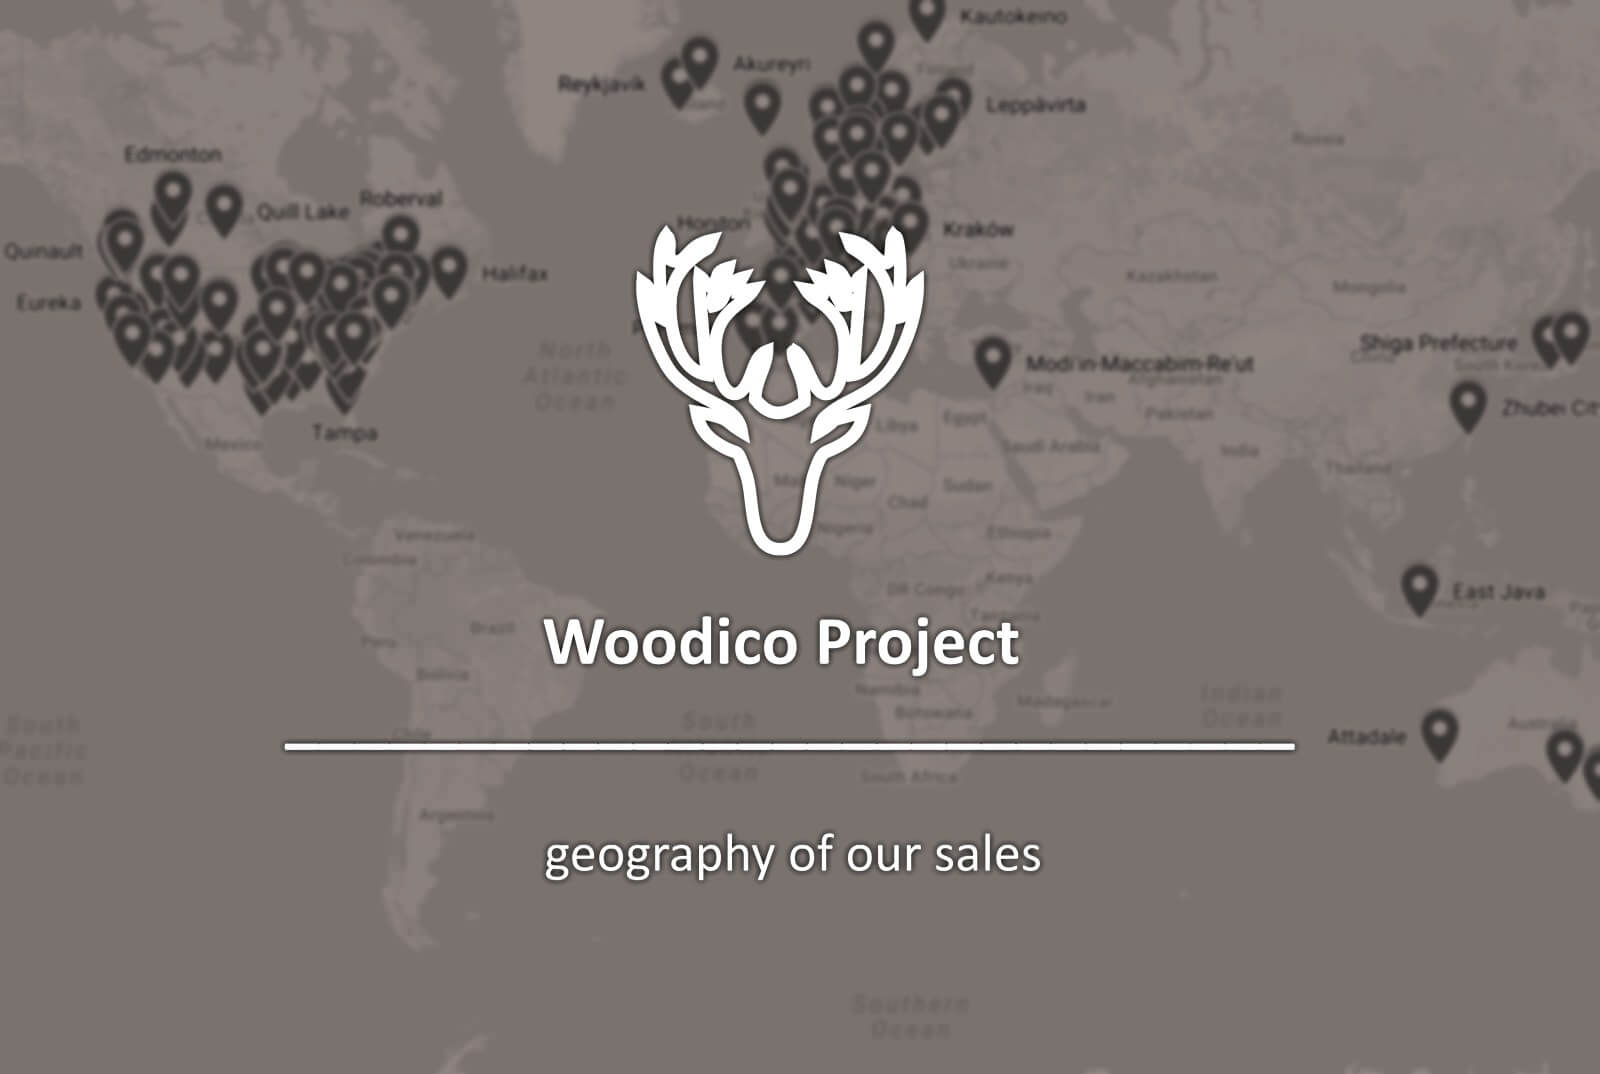 Worldwide shipping - woodico.pro worldwide shipping